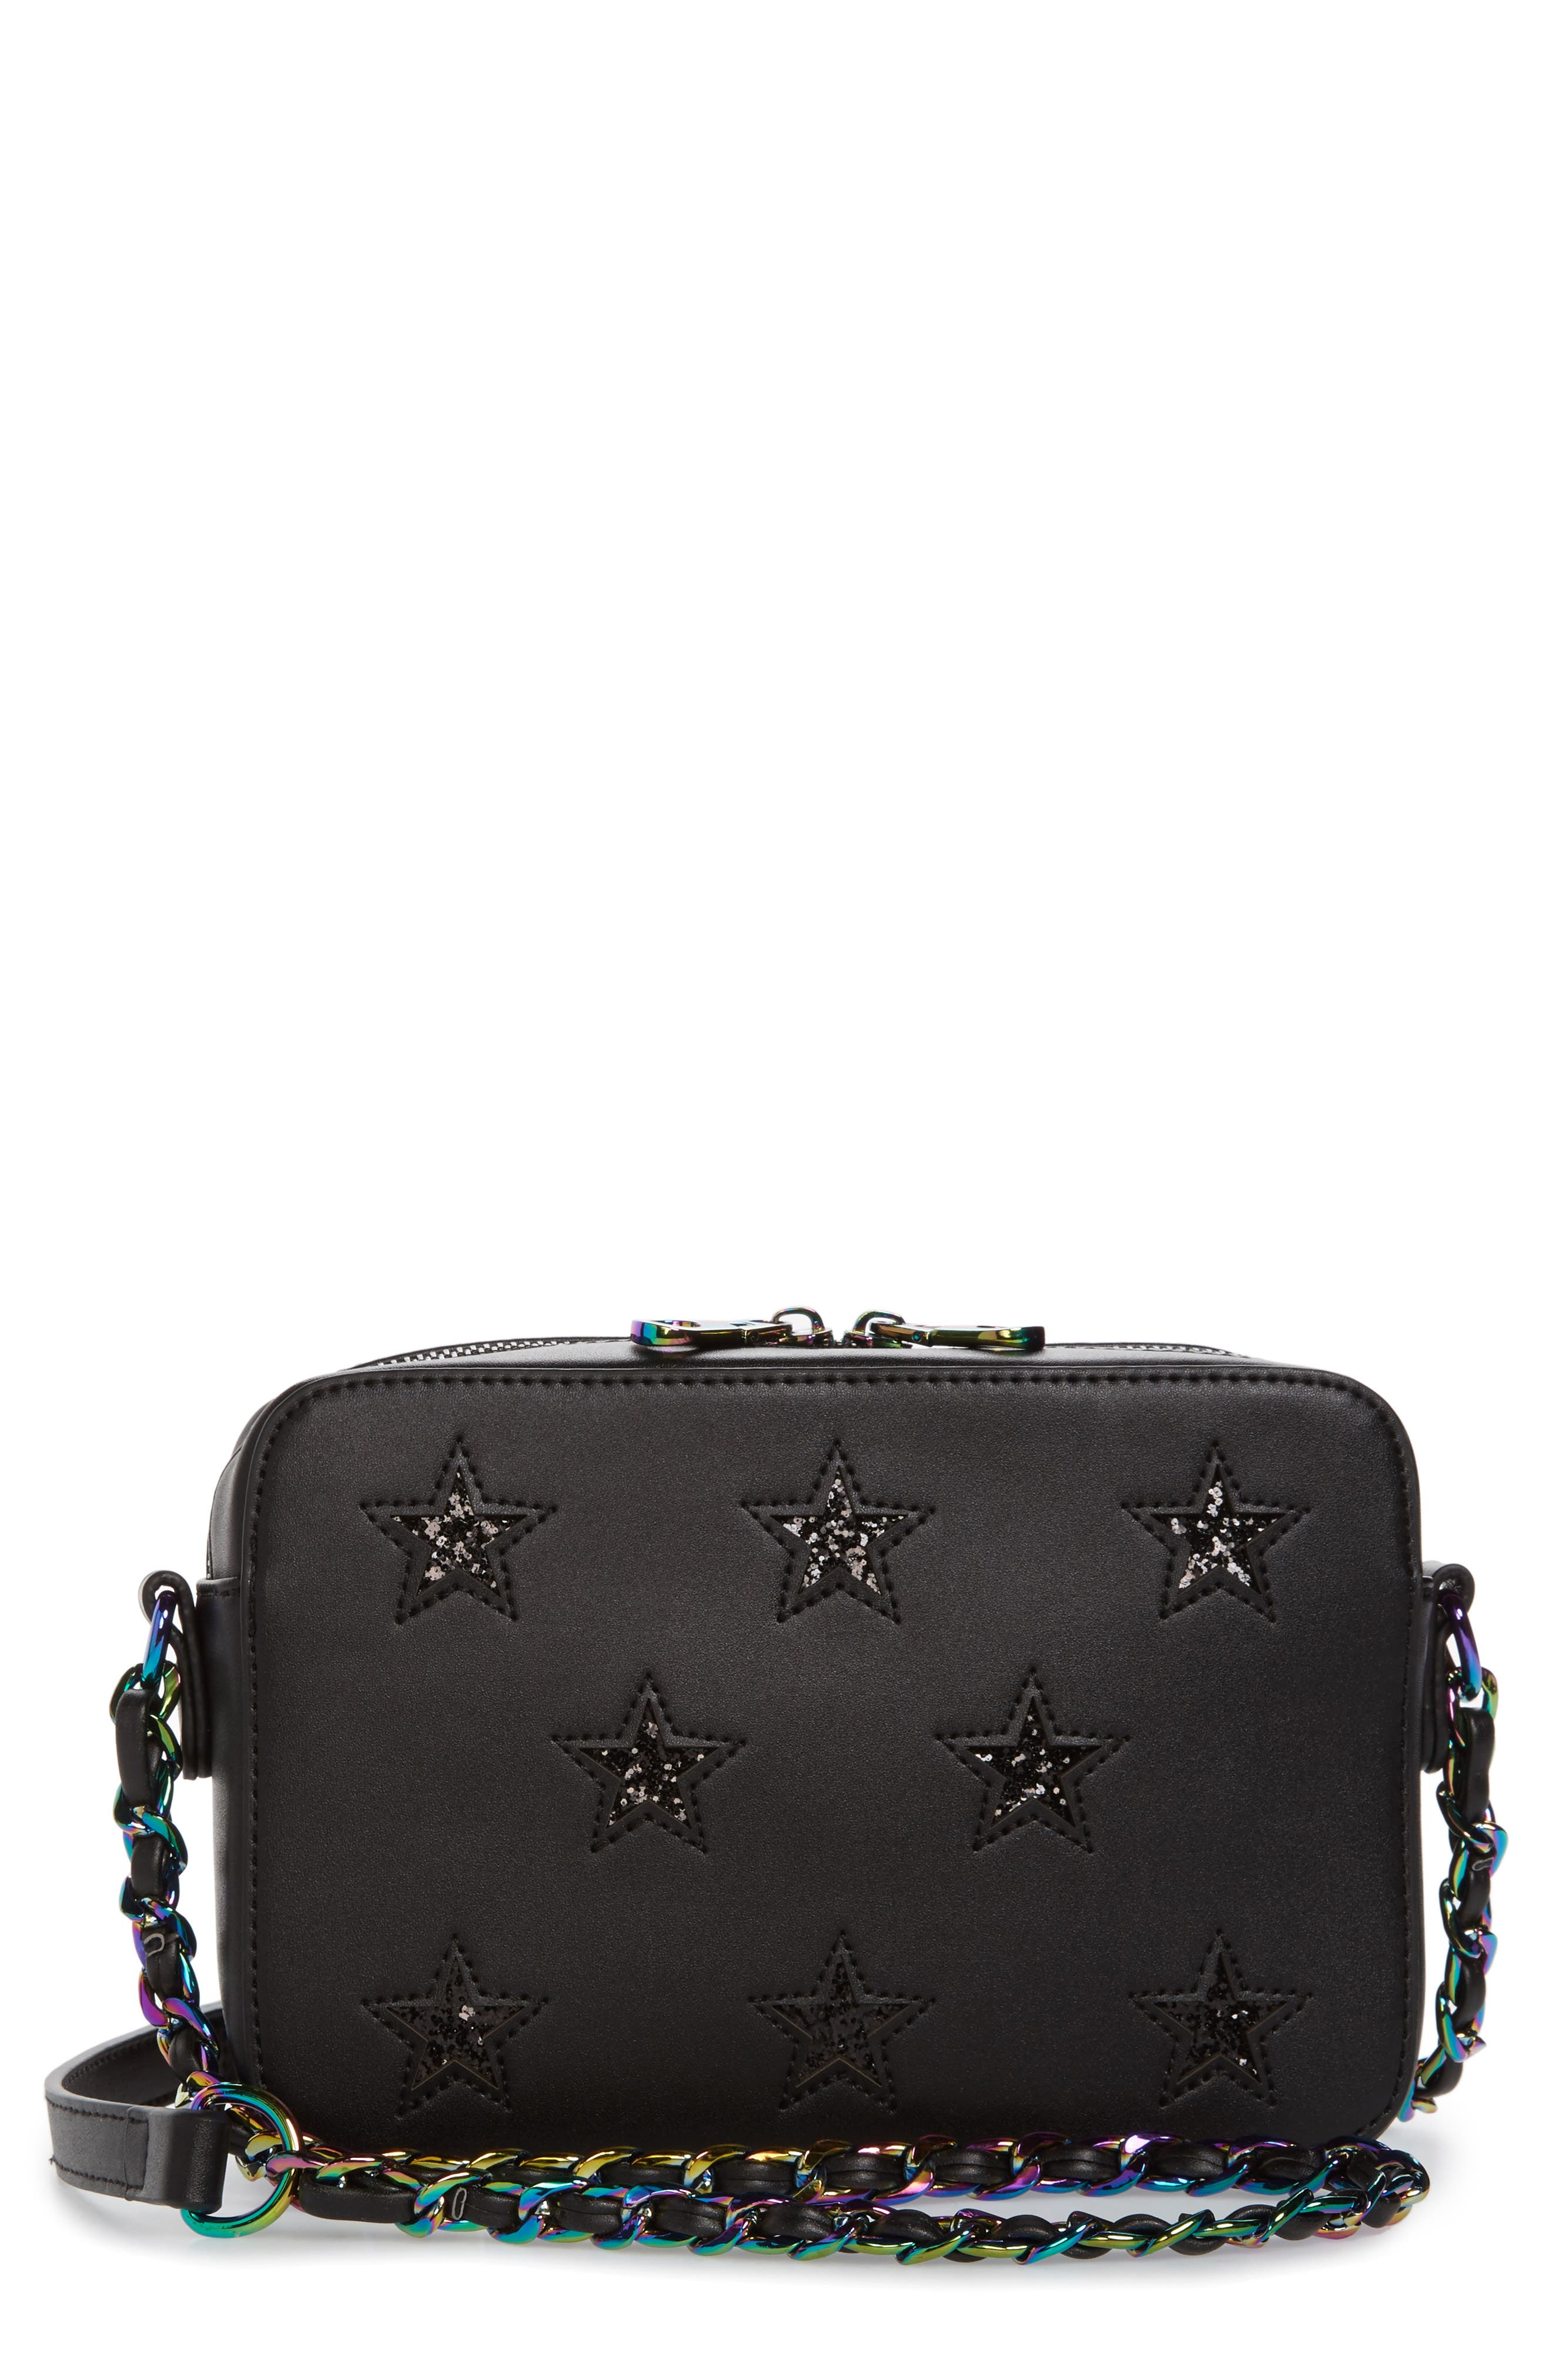 Chelsea28 Bella Glitter Star Faux Leather Crossbody Bag